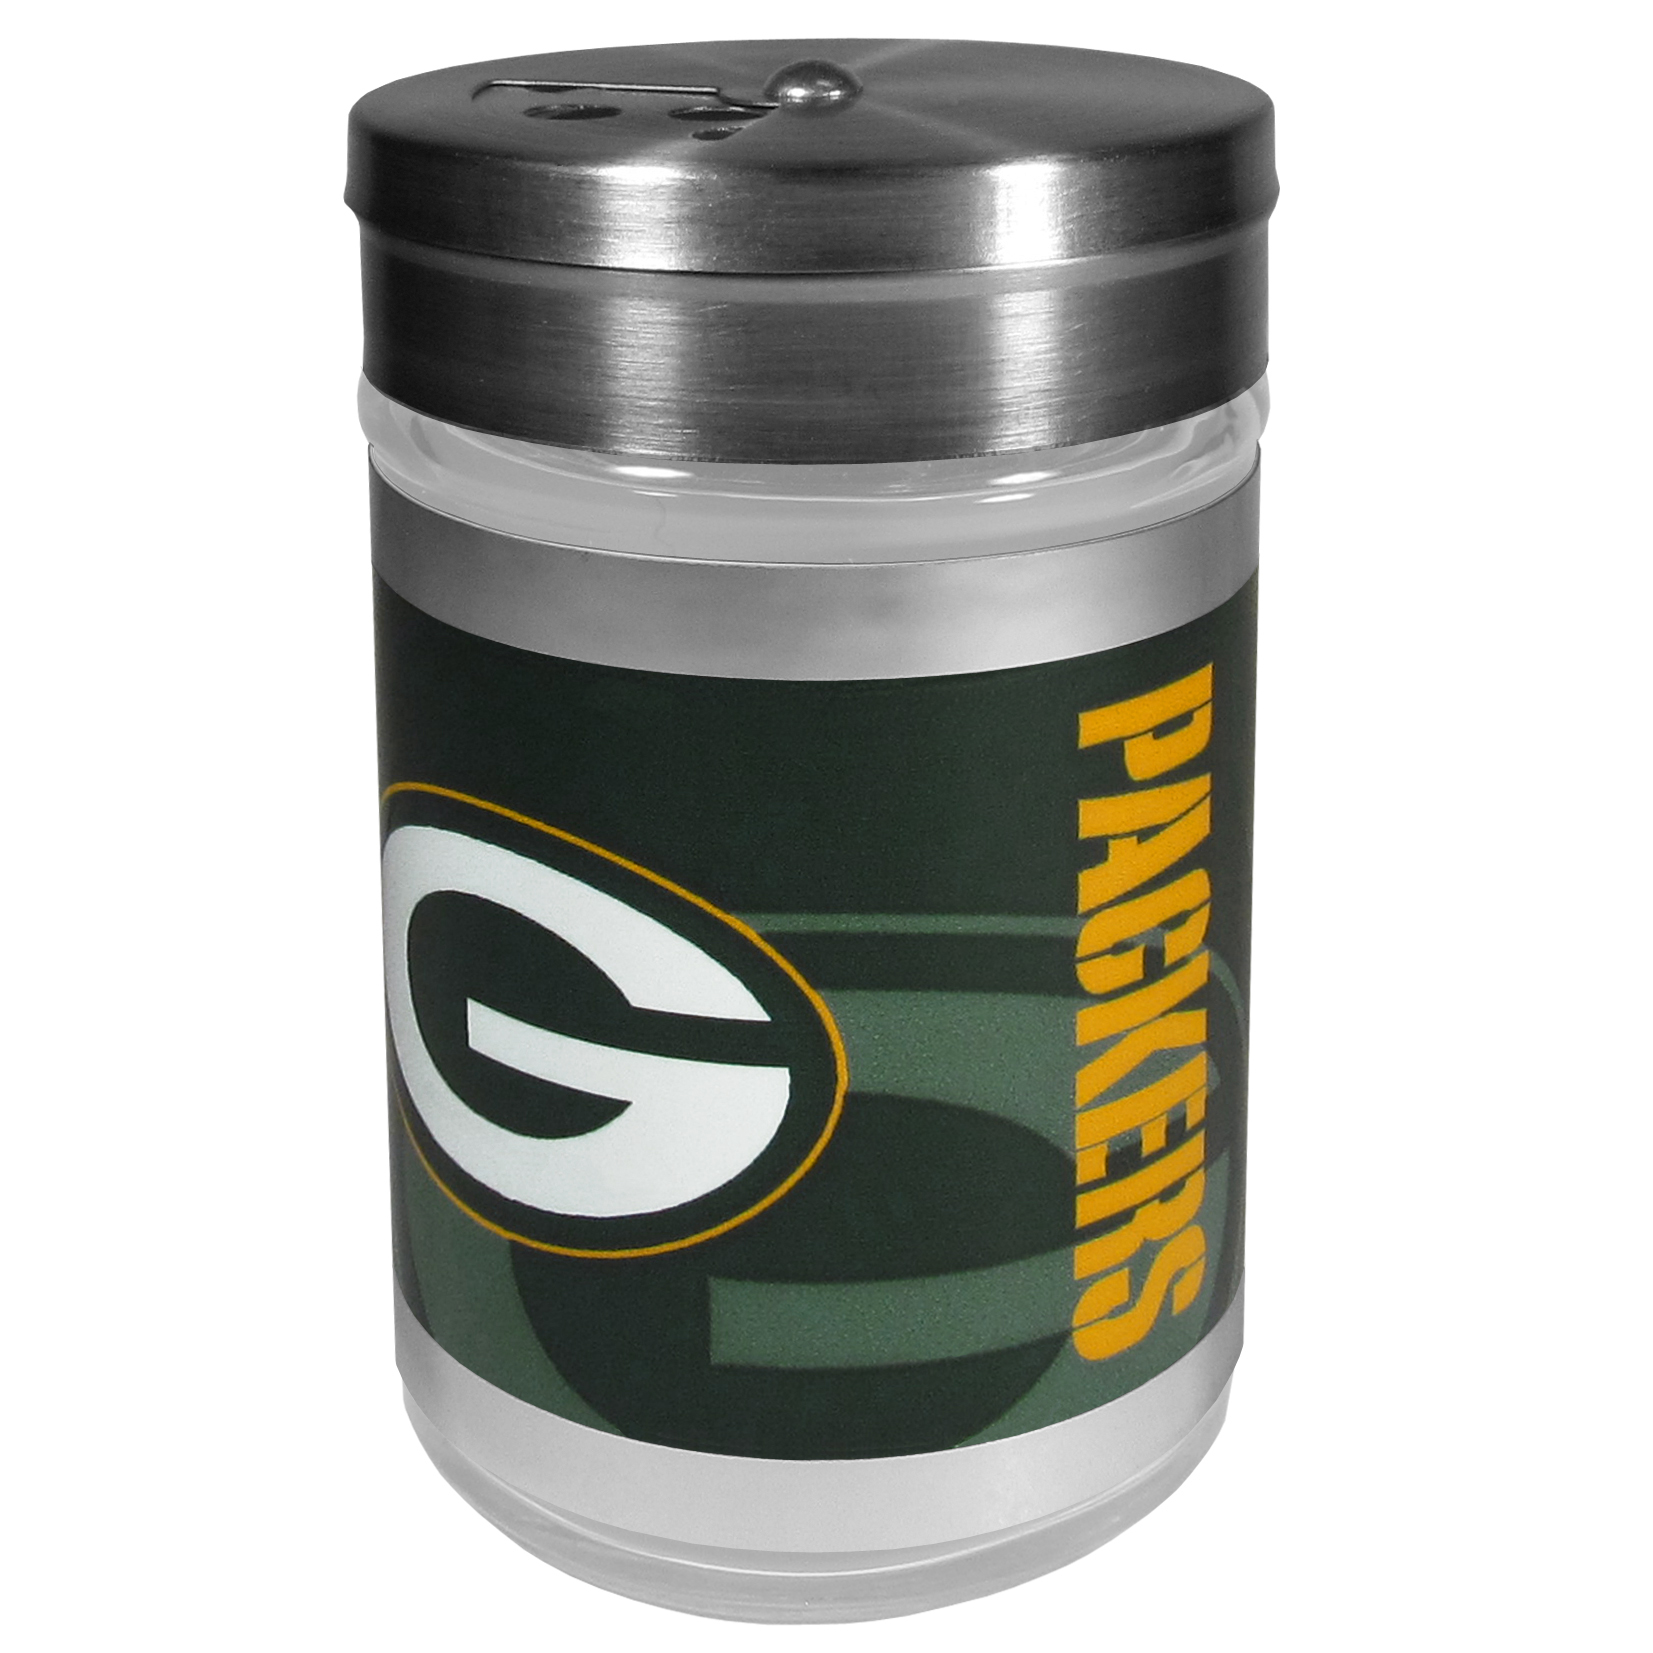 Green Bay Packers Tailgater Season Shakers - Spice it up with our Green Bay Packers tailgater season shakers! This compact shaker is 2 inch tall with a twist top that closes off the holes at the top making it perfect for travel preventing those messy spills. The shaker has wide holes perfect for keeping your pepper seeds or cheese toppings. The bright team graphics will make you the envy of the other fans while you are grilling up your tailgating goodies.